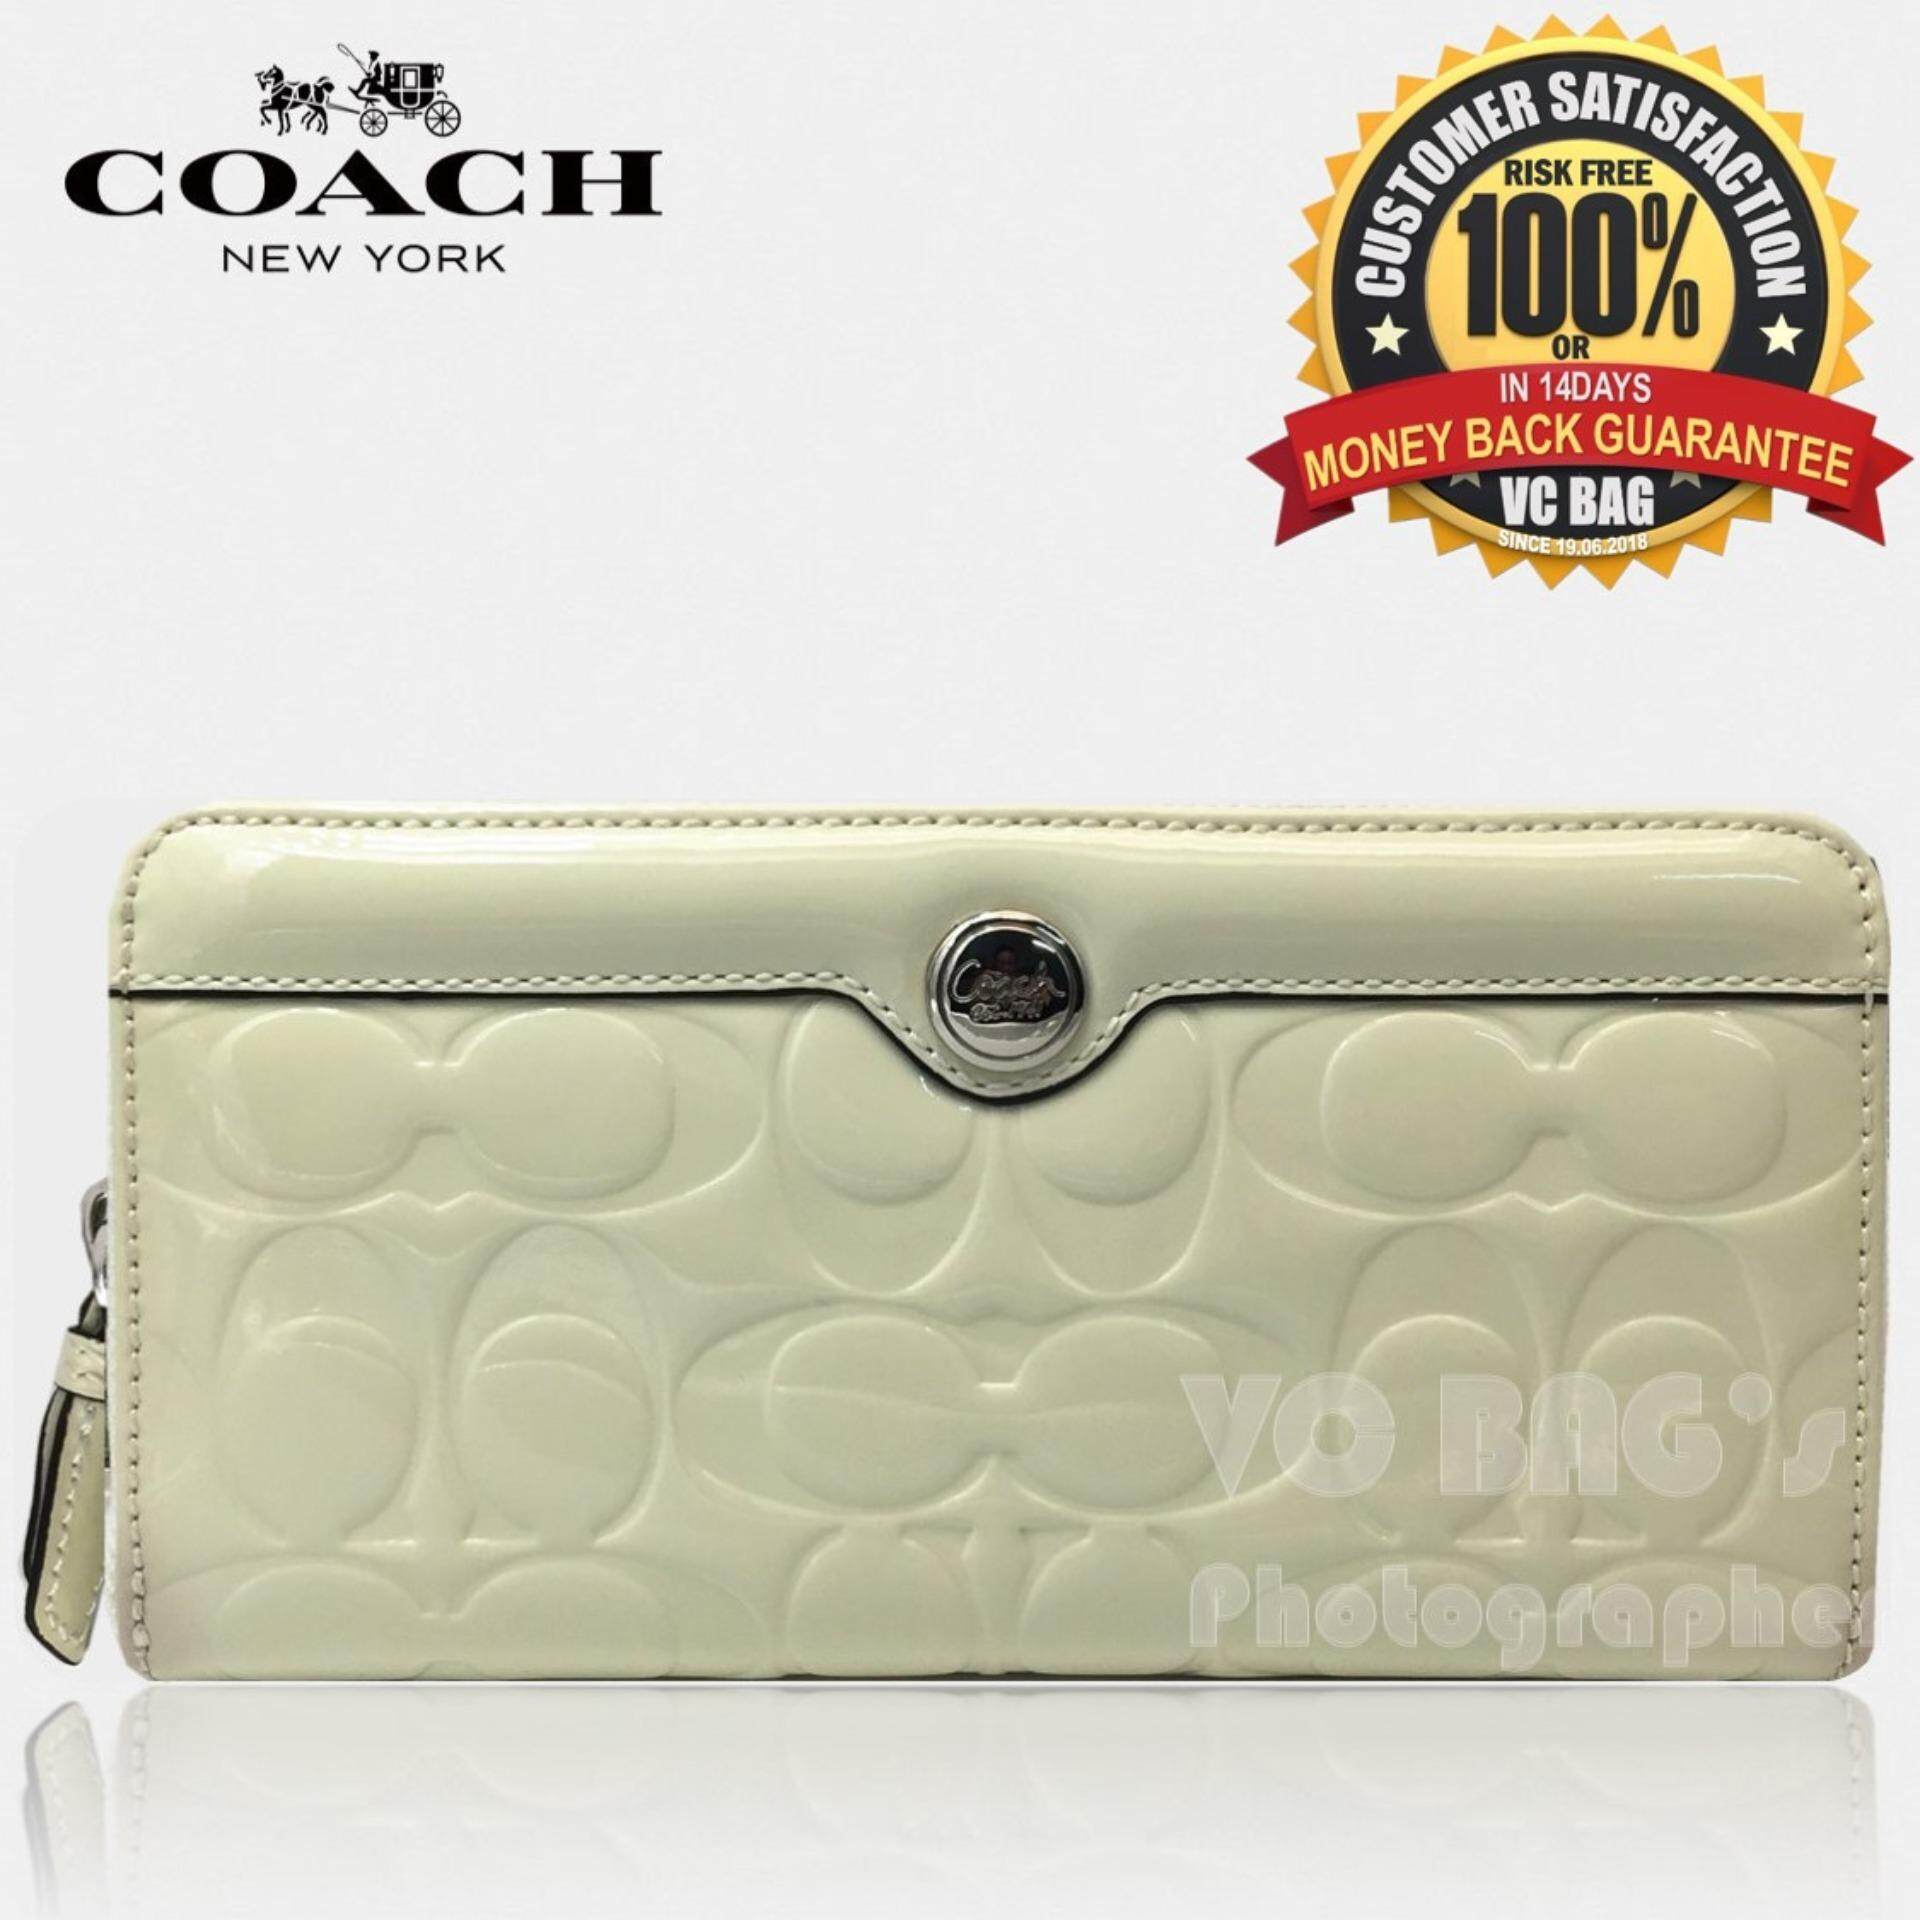 55396685661138 Coach Women Wallets price in Malaysia - Best Coach Women Wallets ...